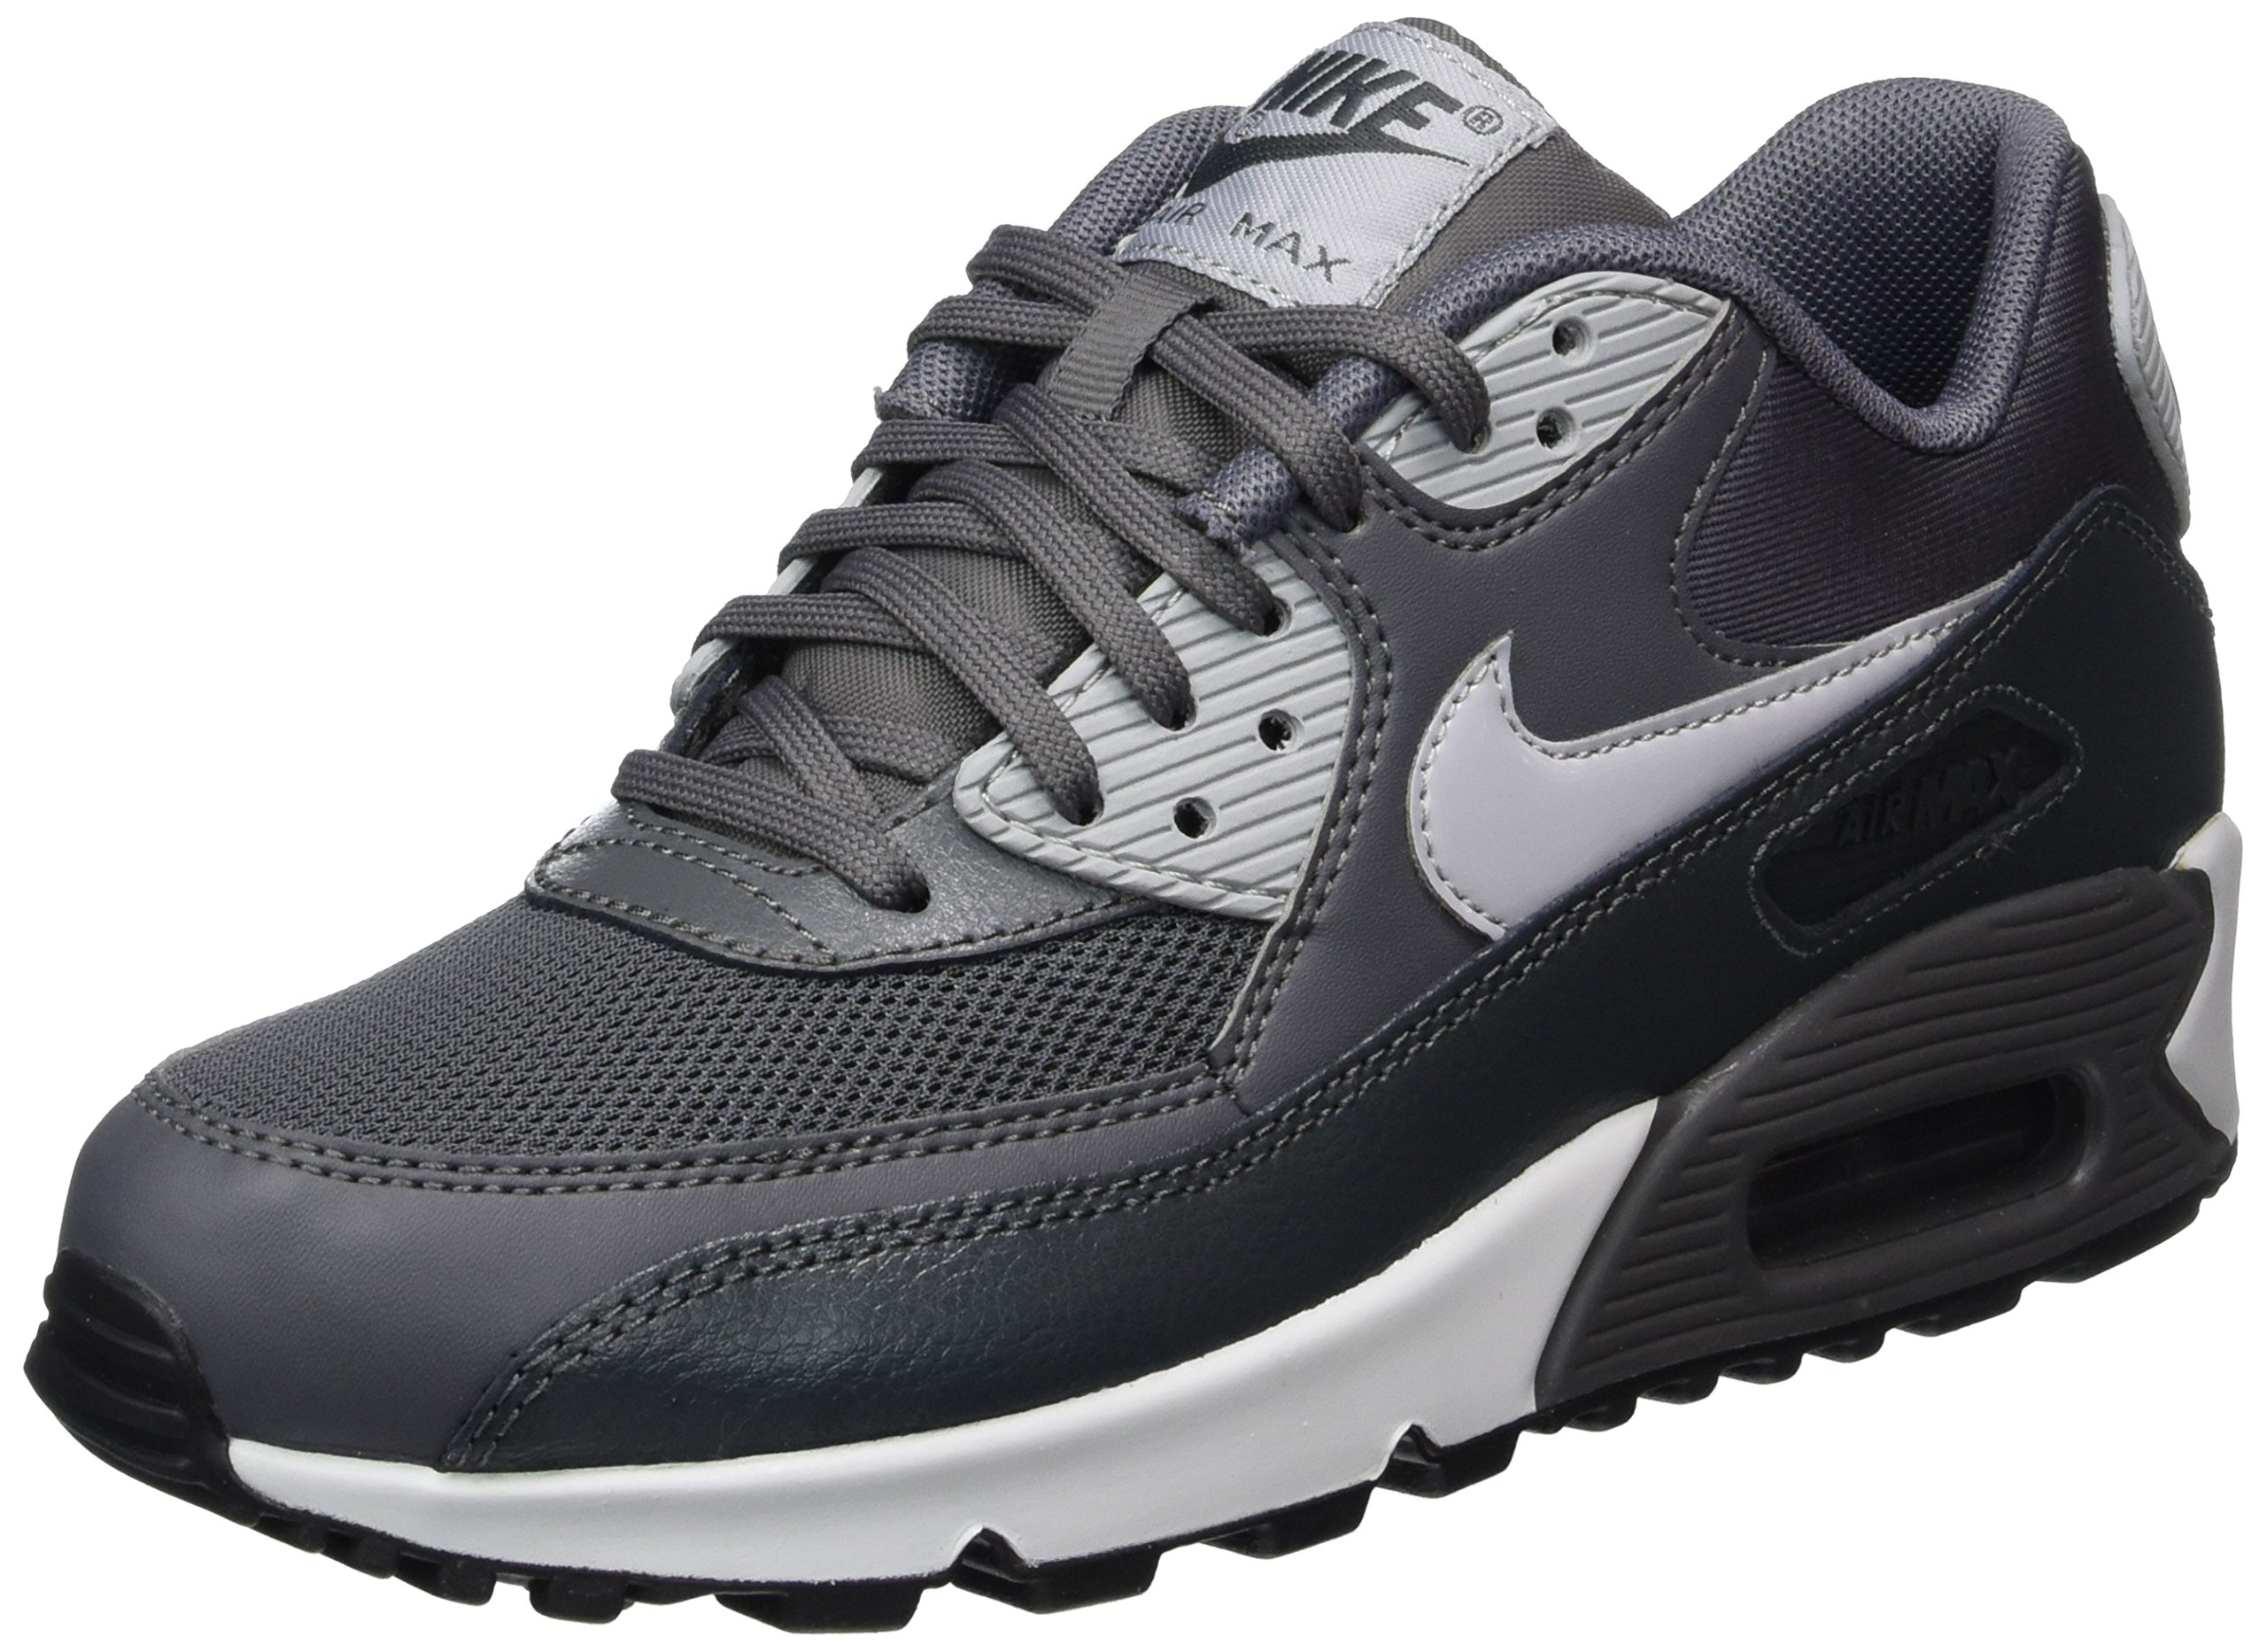 hot sale online 5bb19 4265c Galleon - NIKE AIR Max 90 Essential Womens Running-Shoes 616730 (6 B(M) US,  Dark Grey Wolf Grey-Anthracite)